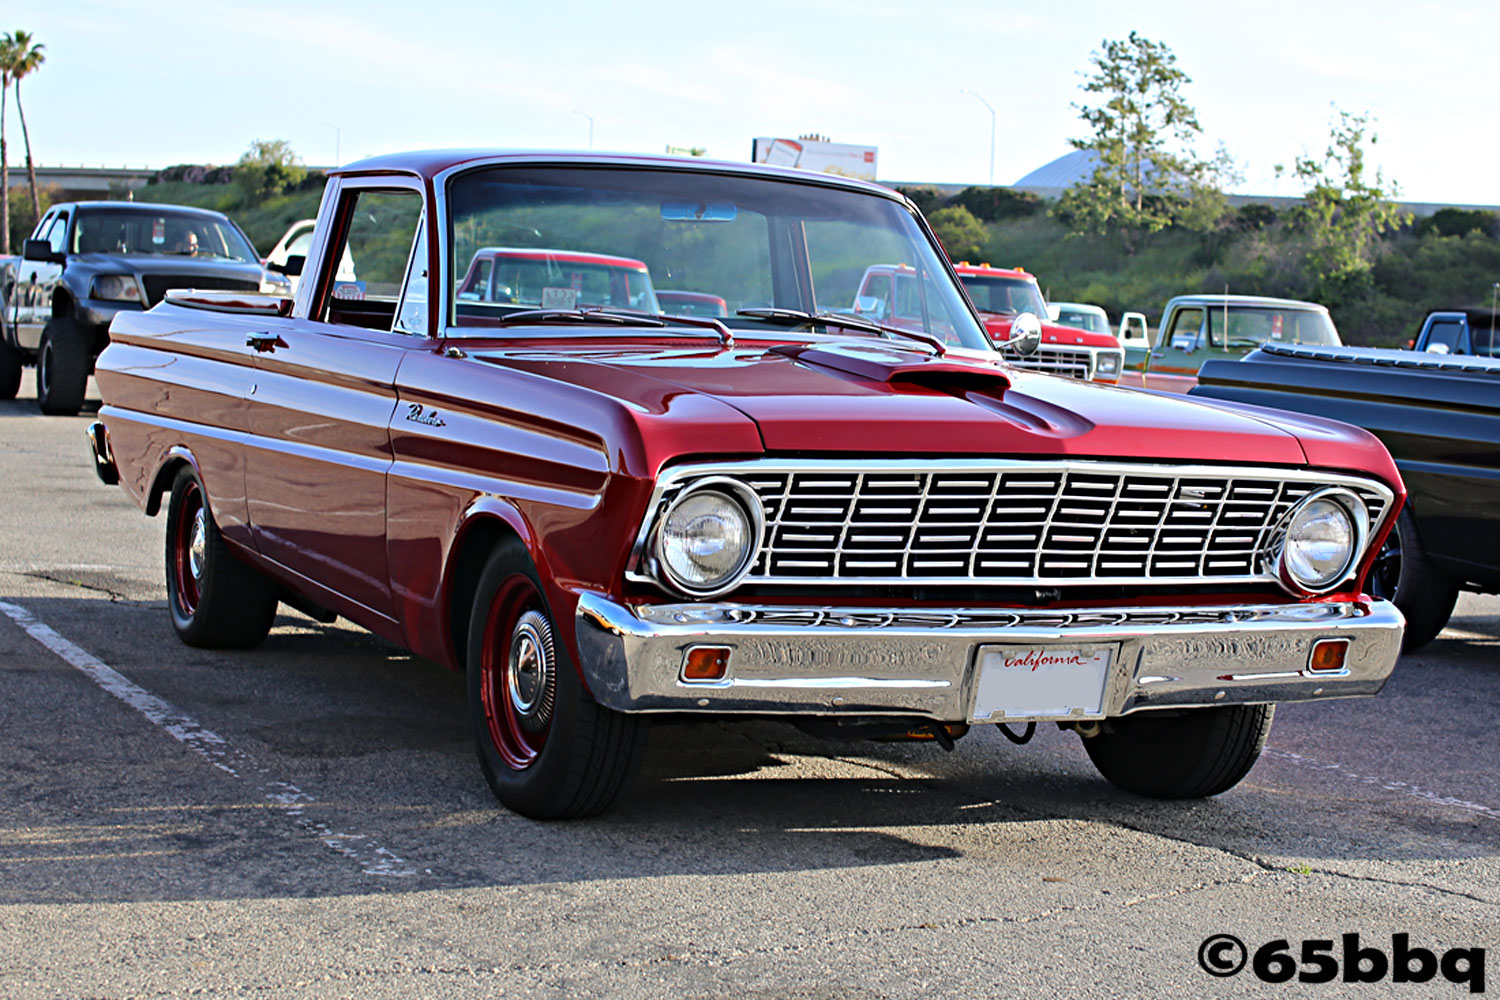 fabulous-fords-forever-april-2019-65bbq-r14.jpg